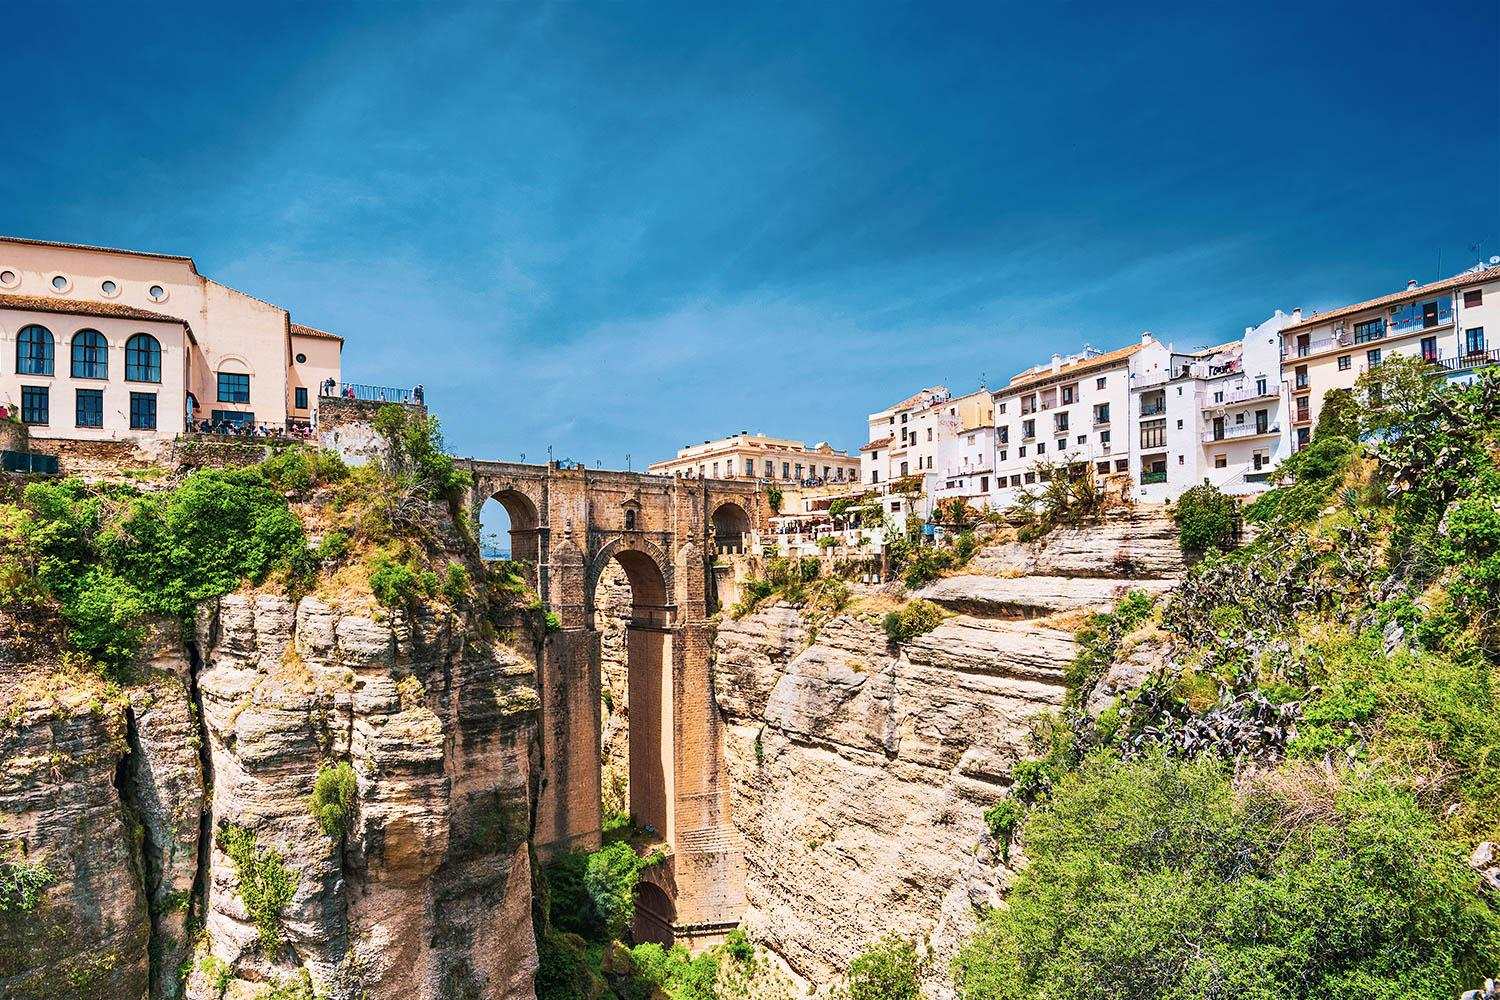 The iconic Puente Nuevo - a 390ft Bridge that divides the charming town of Ronda